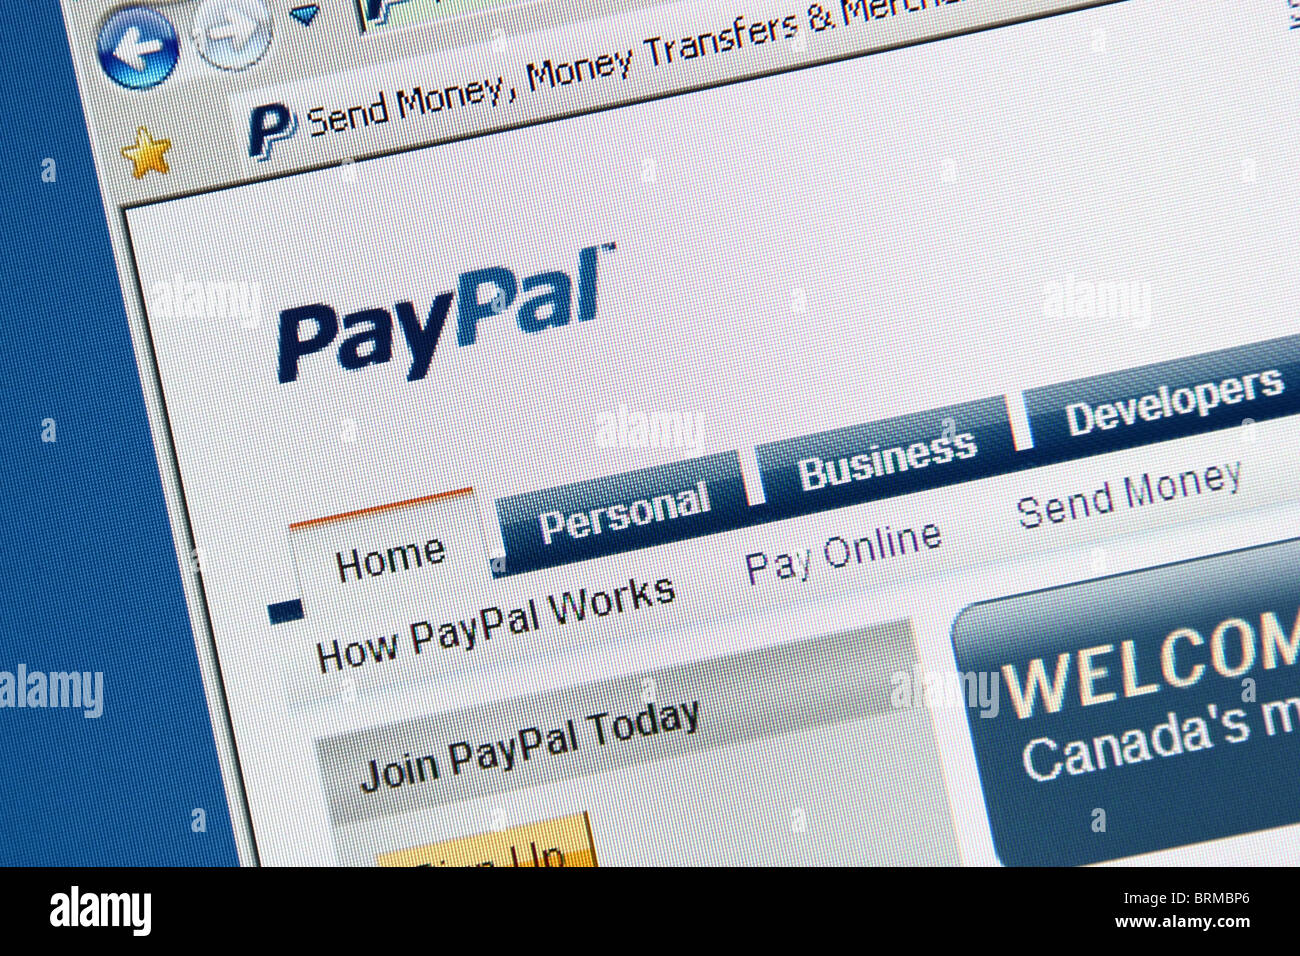 online payment money transfer paypal - Stock Image